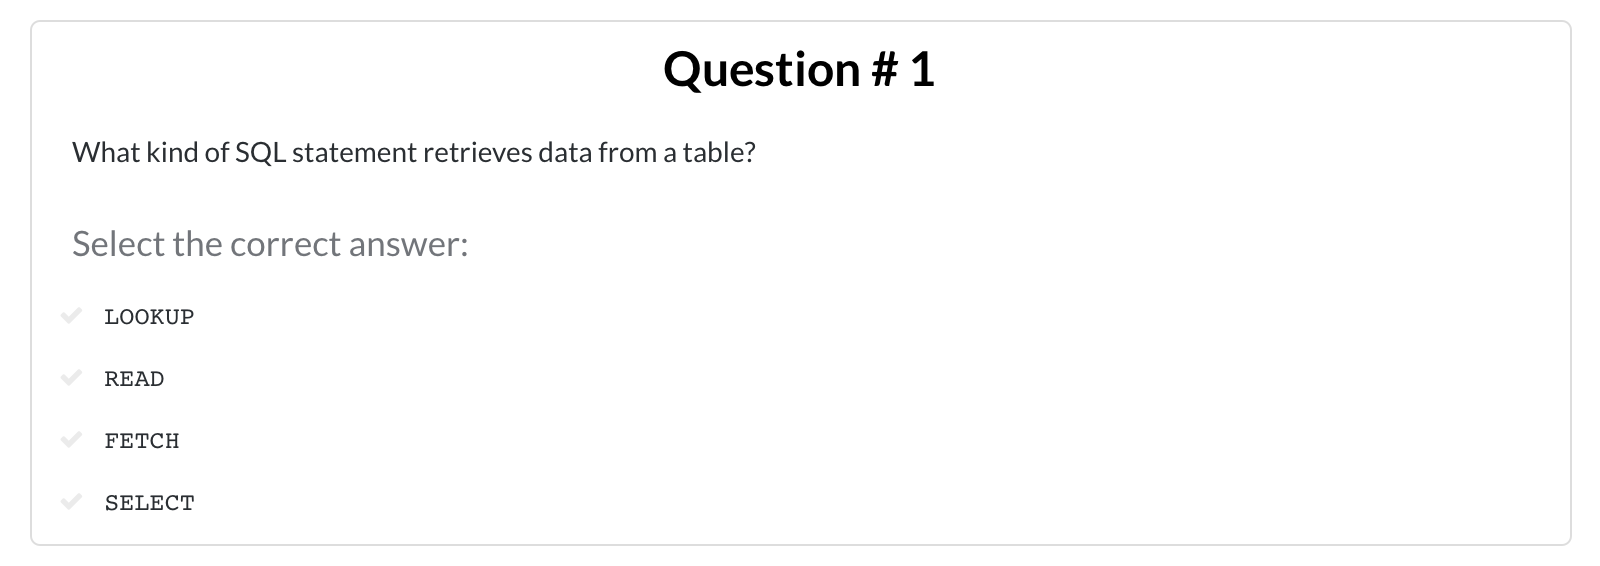 Question 1 of 5: What kind of SQL statement retrieves data from a table?